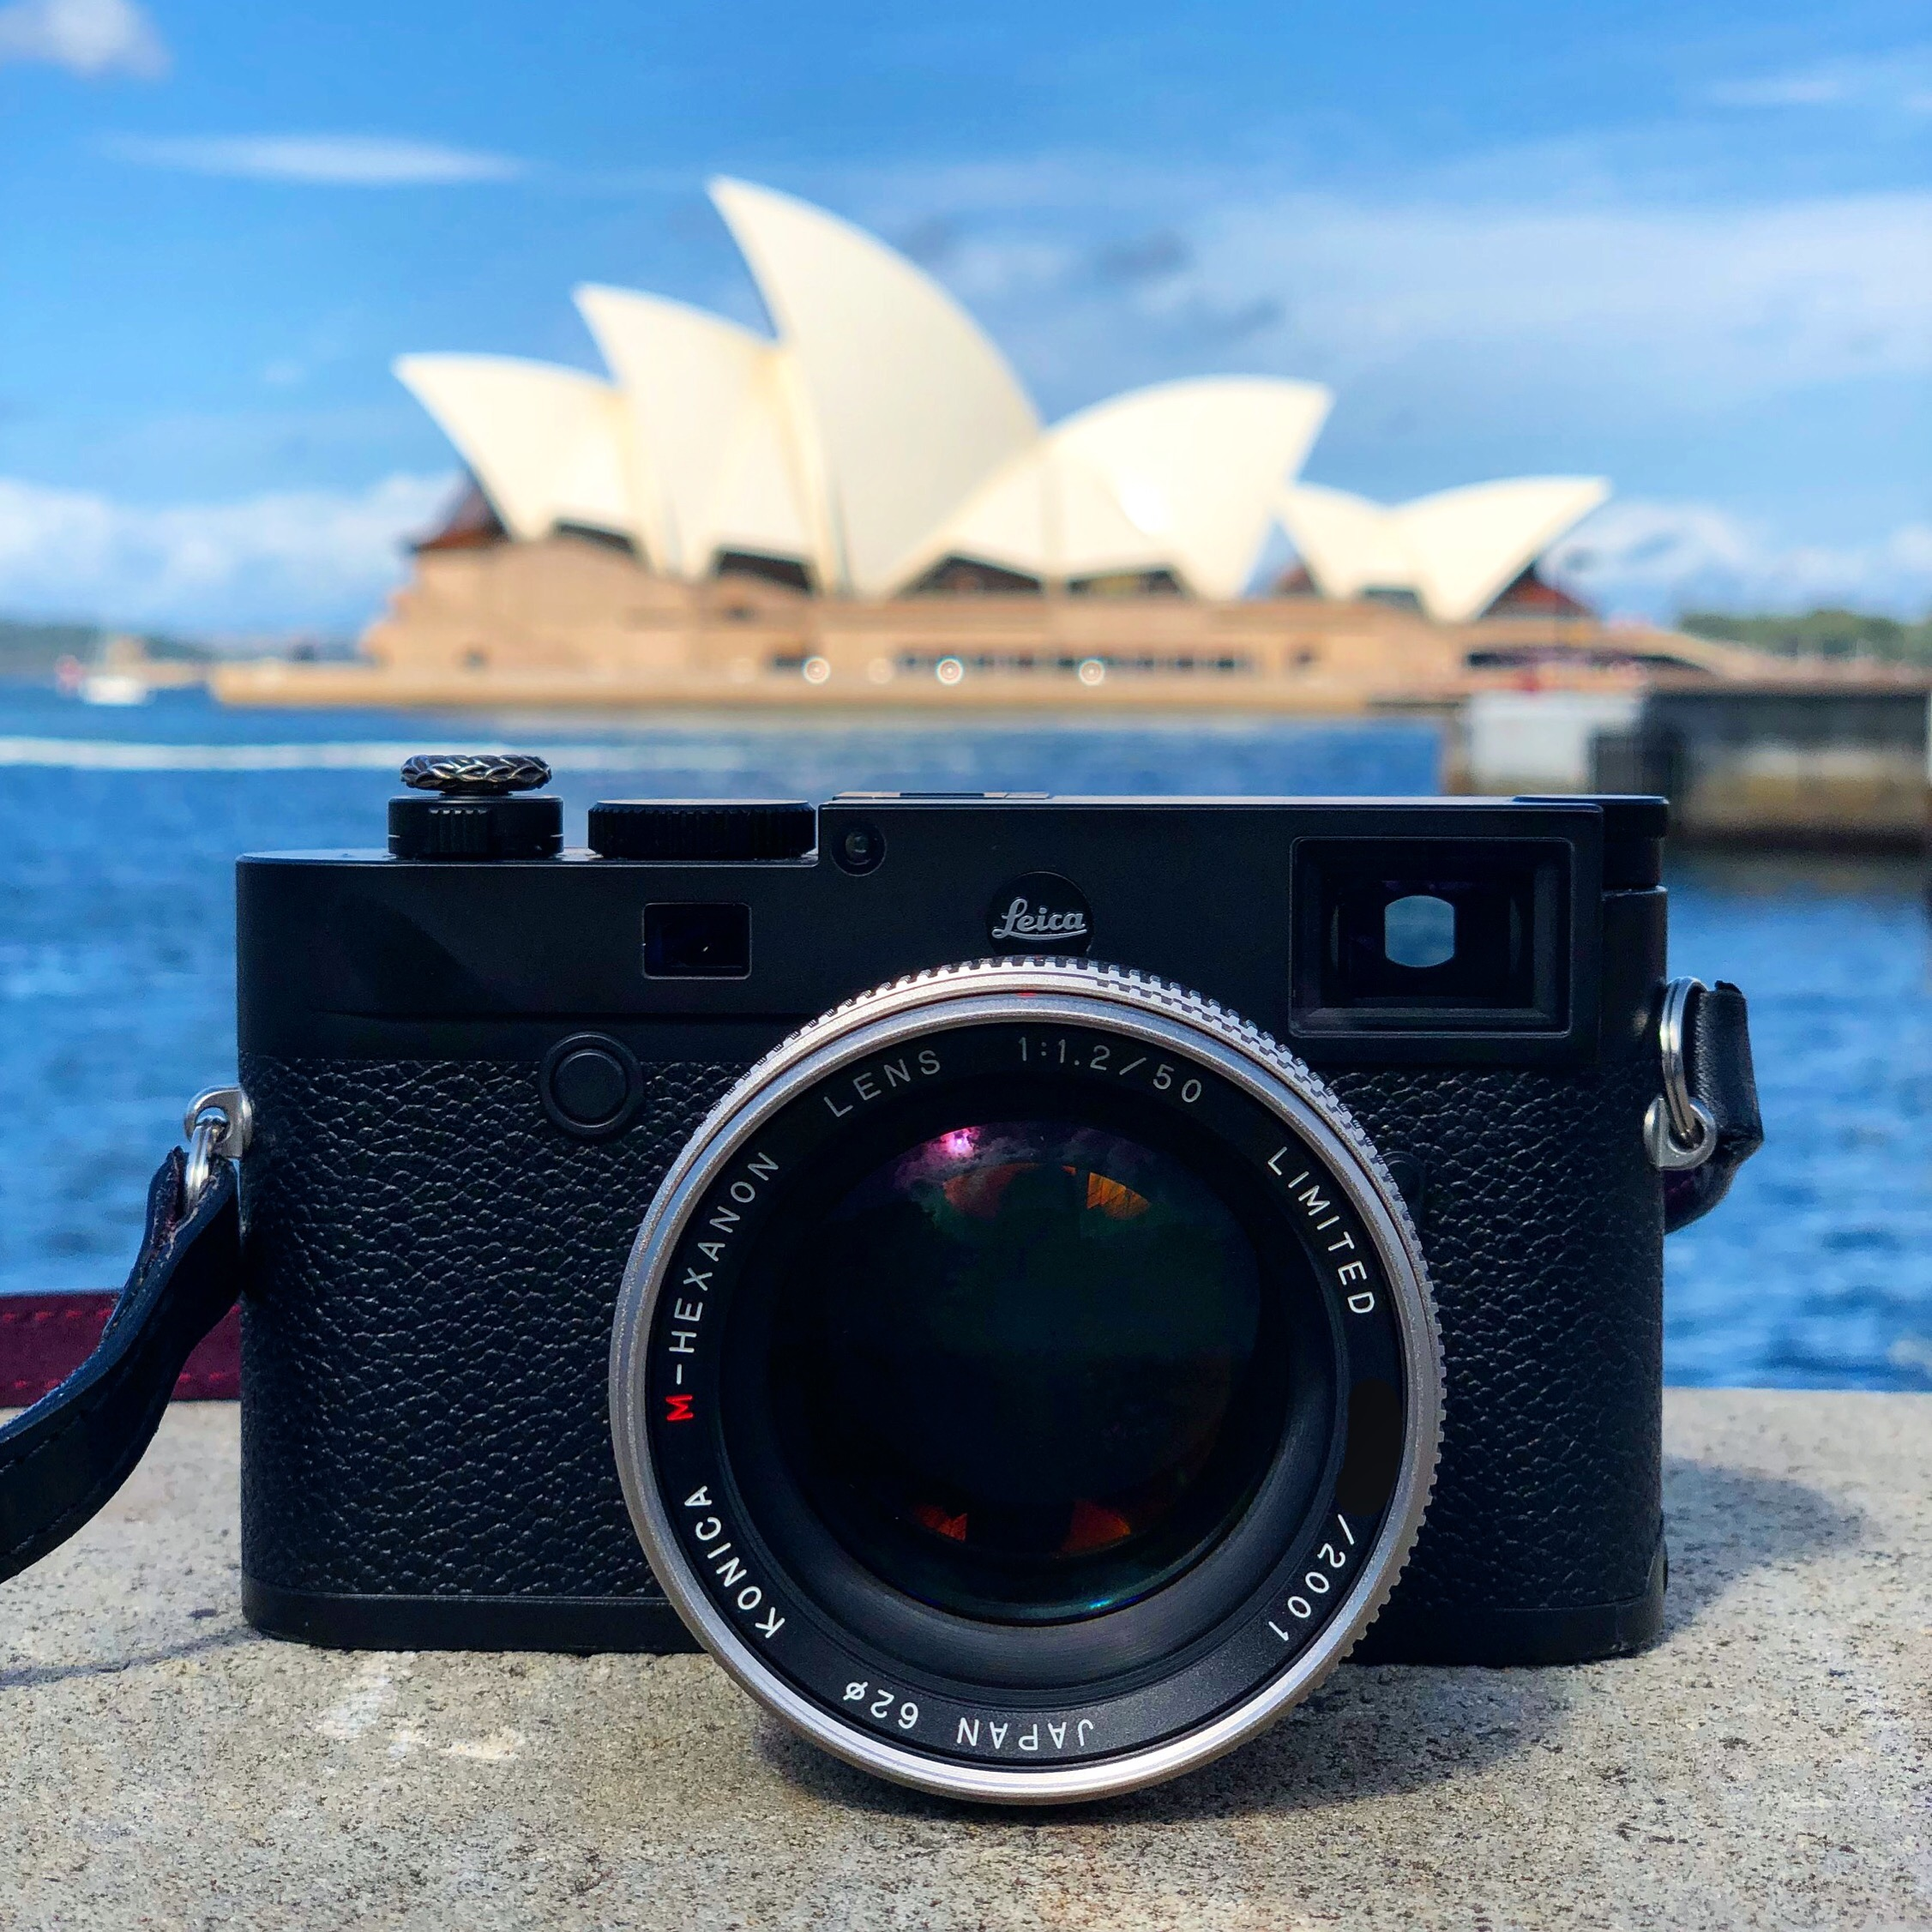 Konica Hexanon 50mm F1 2 M Lens — LEICA MOMENT REVIEW